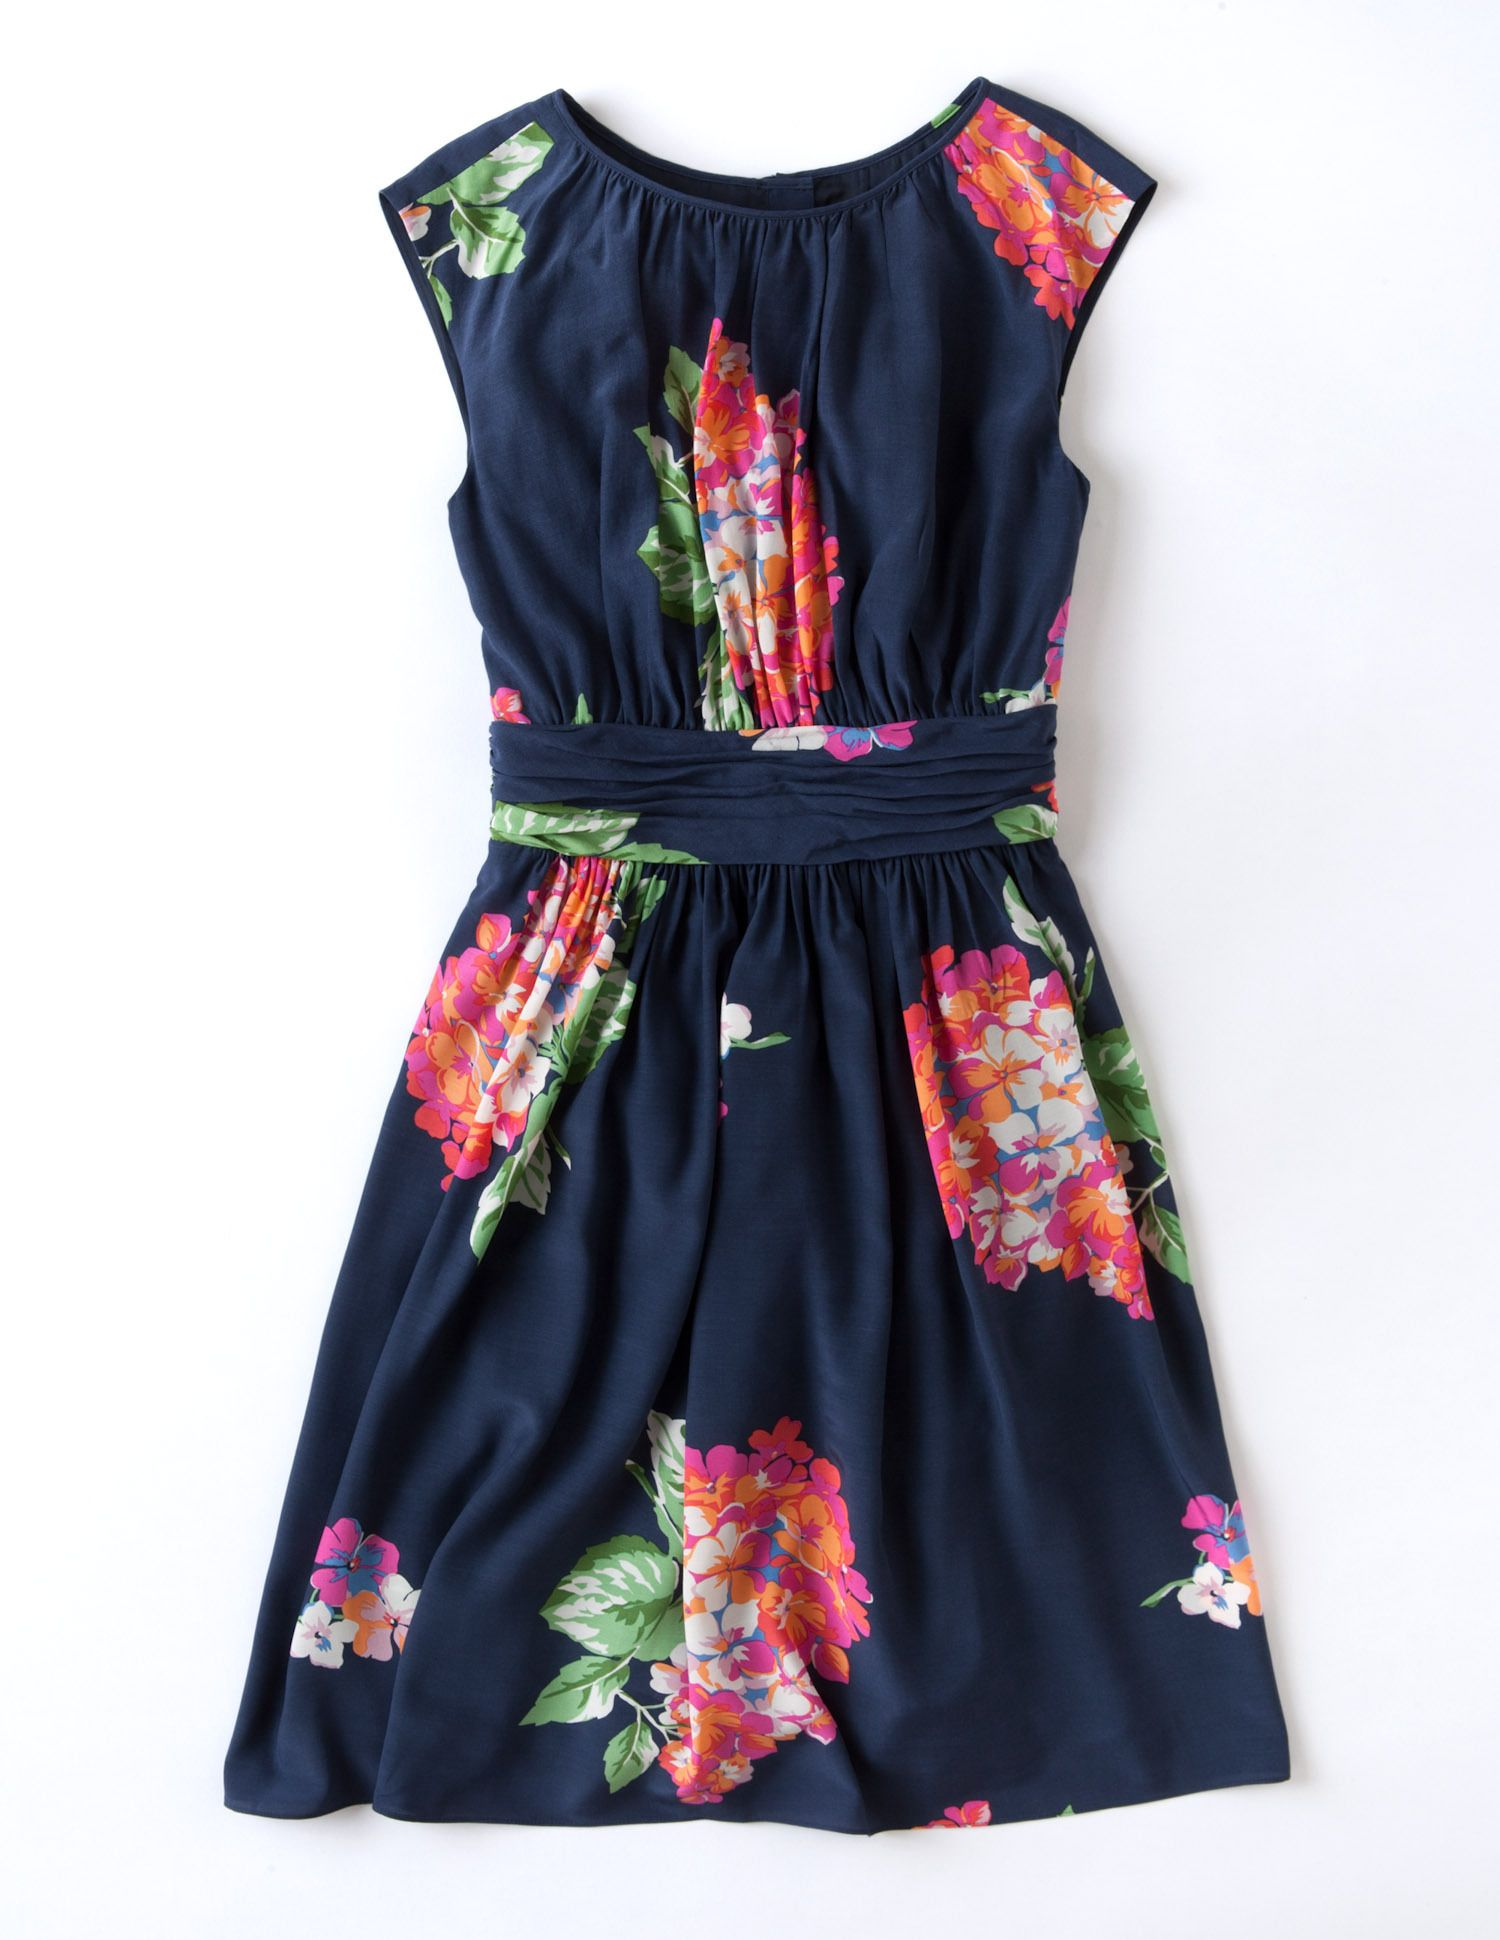 Selina Dress WH633 Occasion Dresses at Boden | Spring 2014 ...